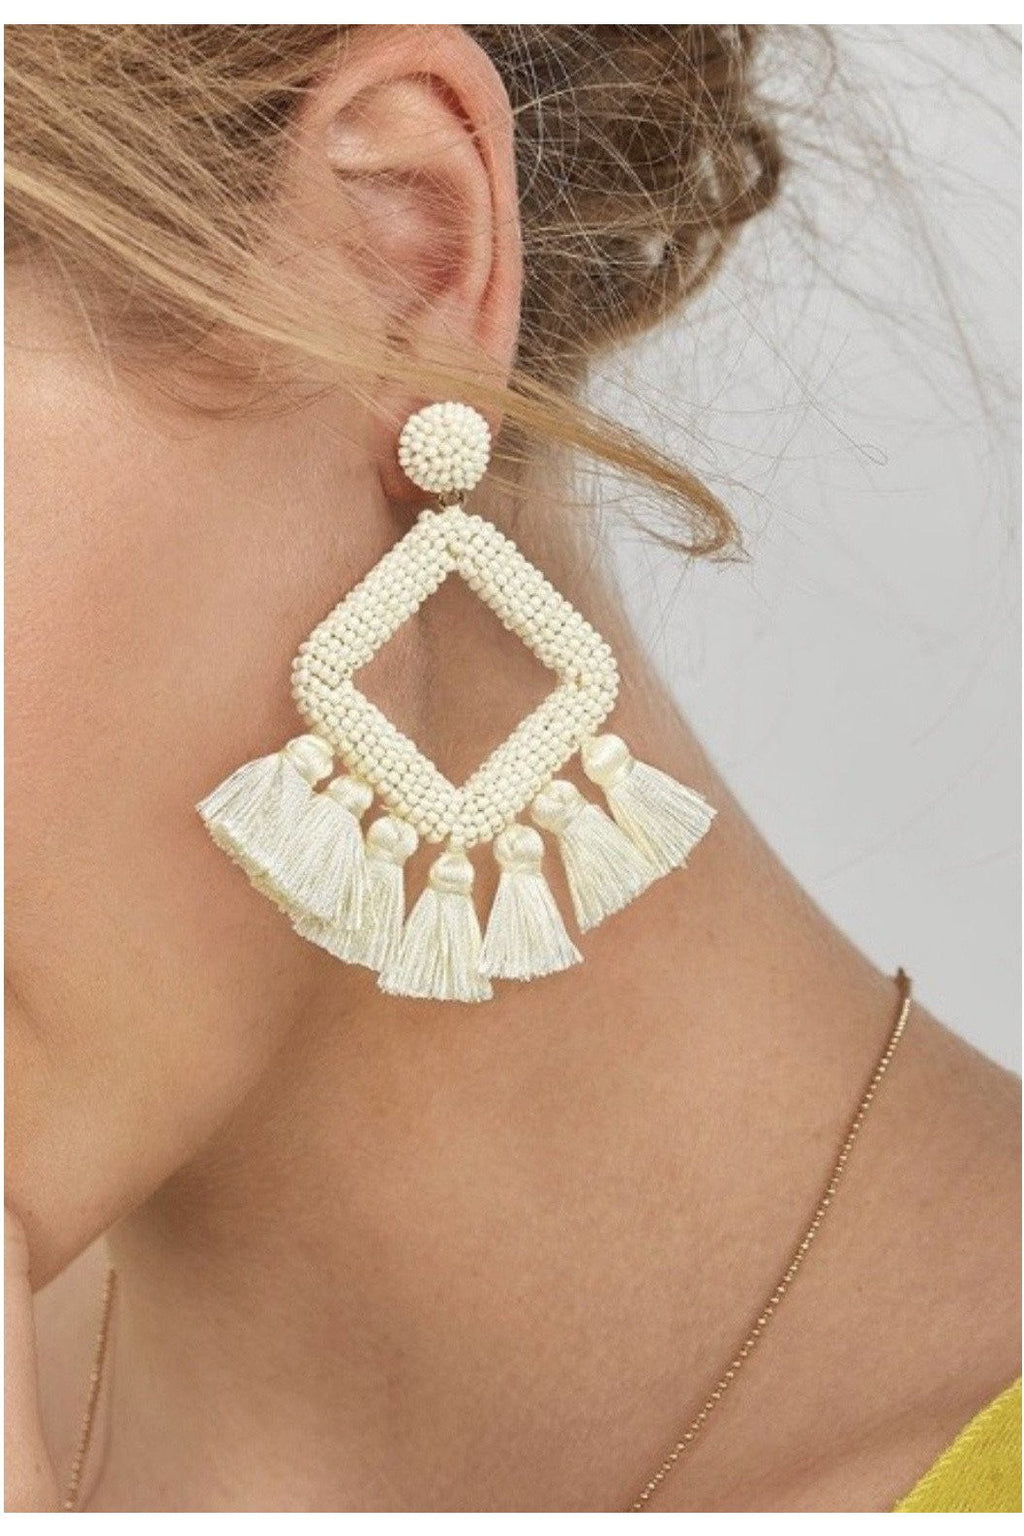 Cay Sal Earrings in Ivory